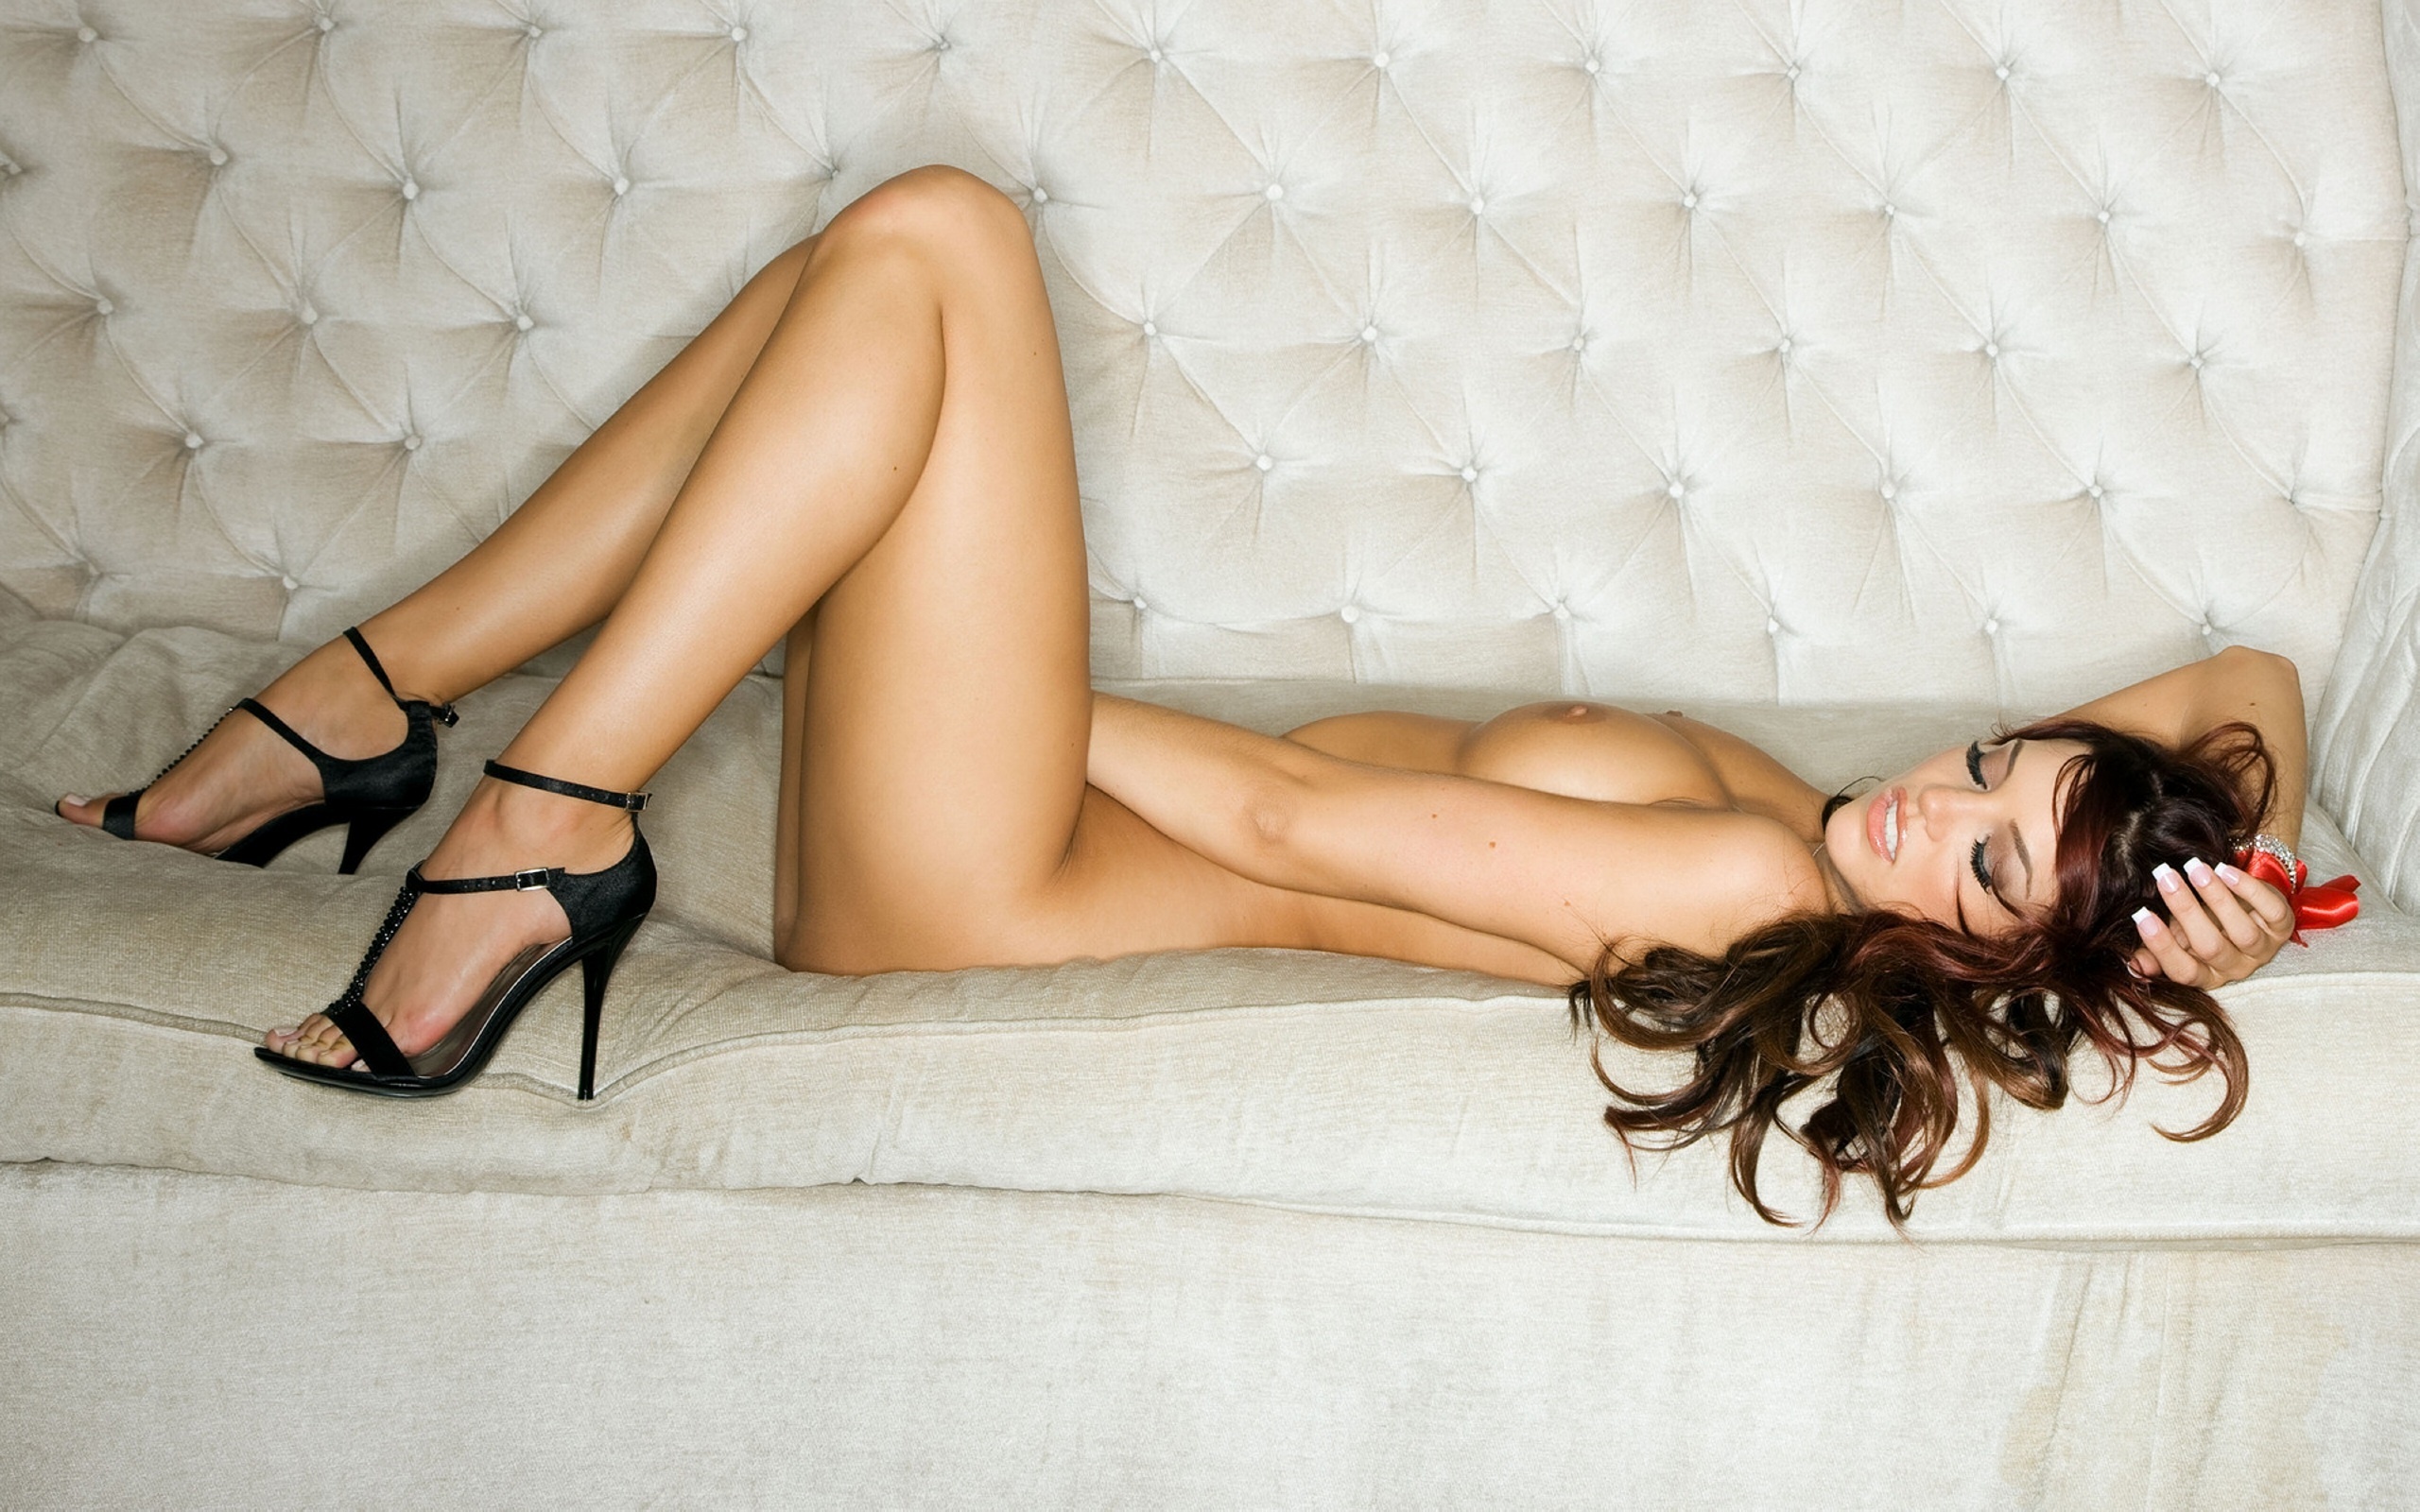 nude-girl-on-haunches-nudes-photos-of-american-girls